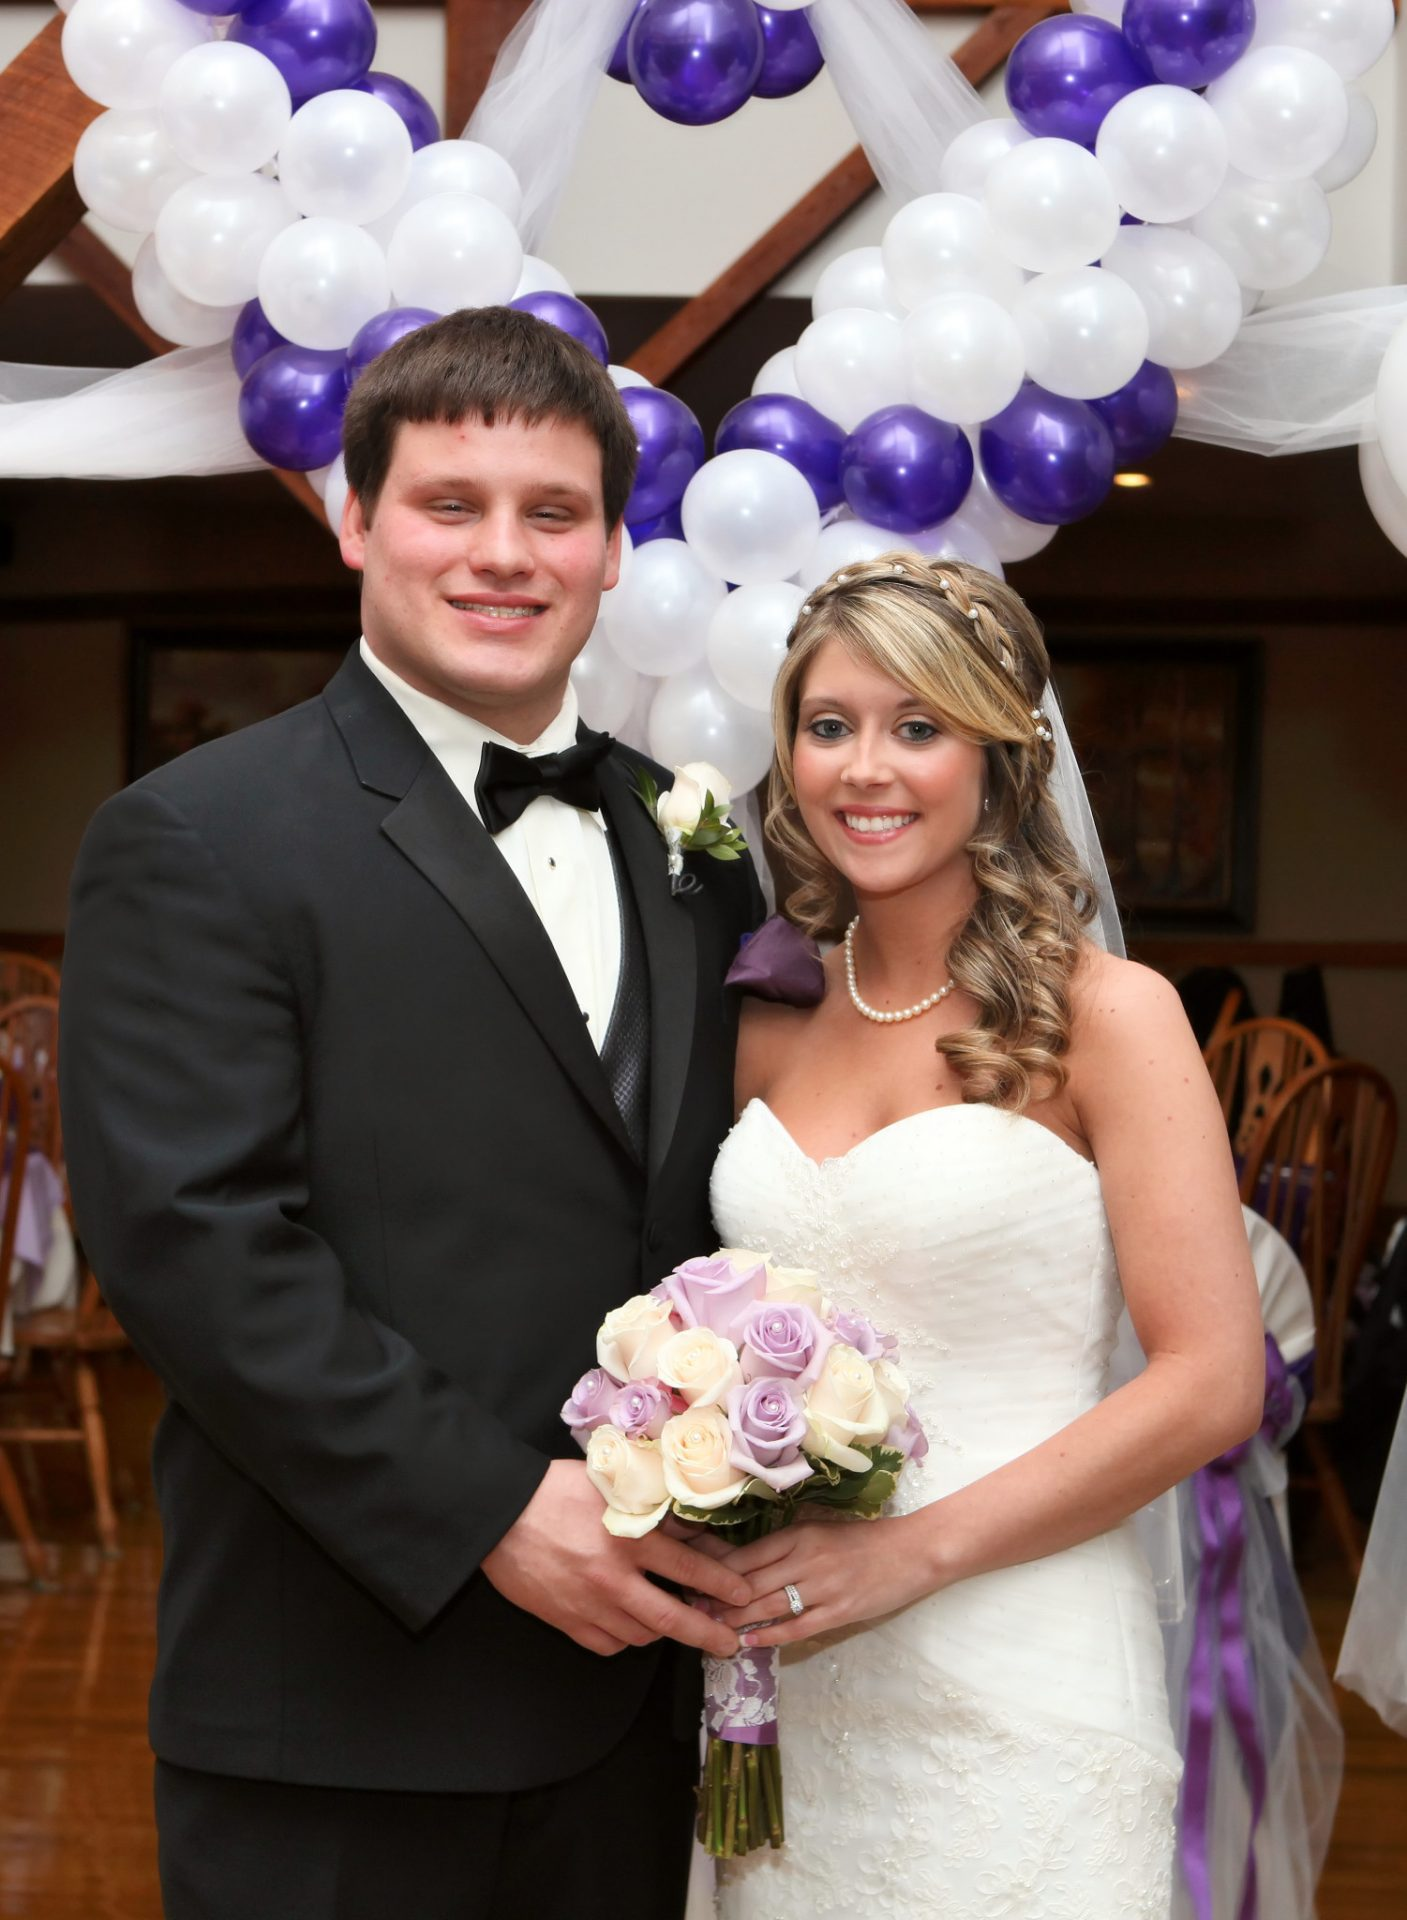 Bride and groom pose in front of white and lavander ballons